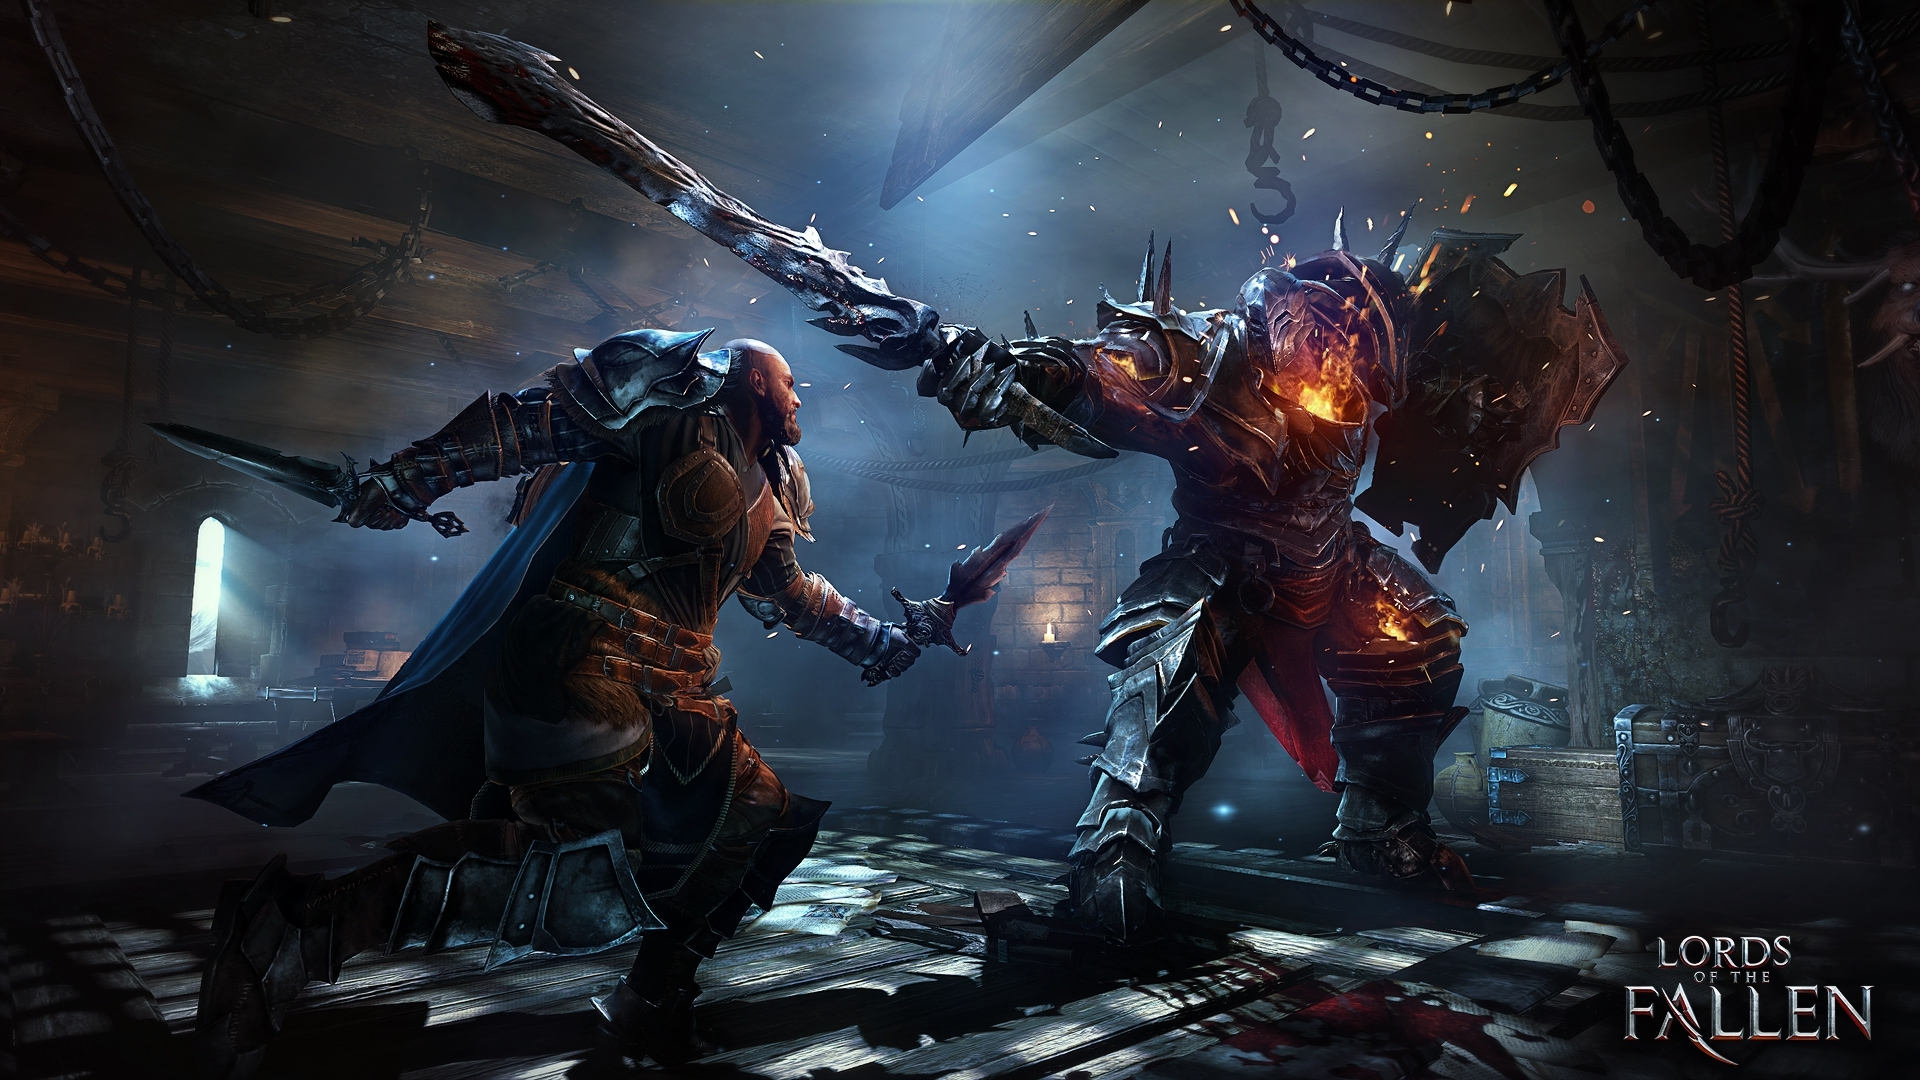 Lords Of The Fallen Wallpapers   HD Wallpapers 1920x1080